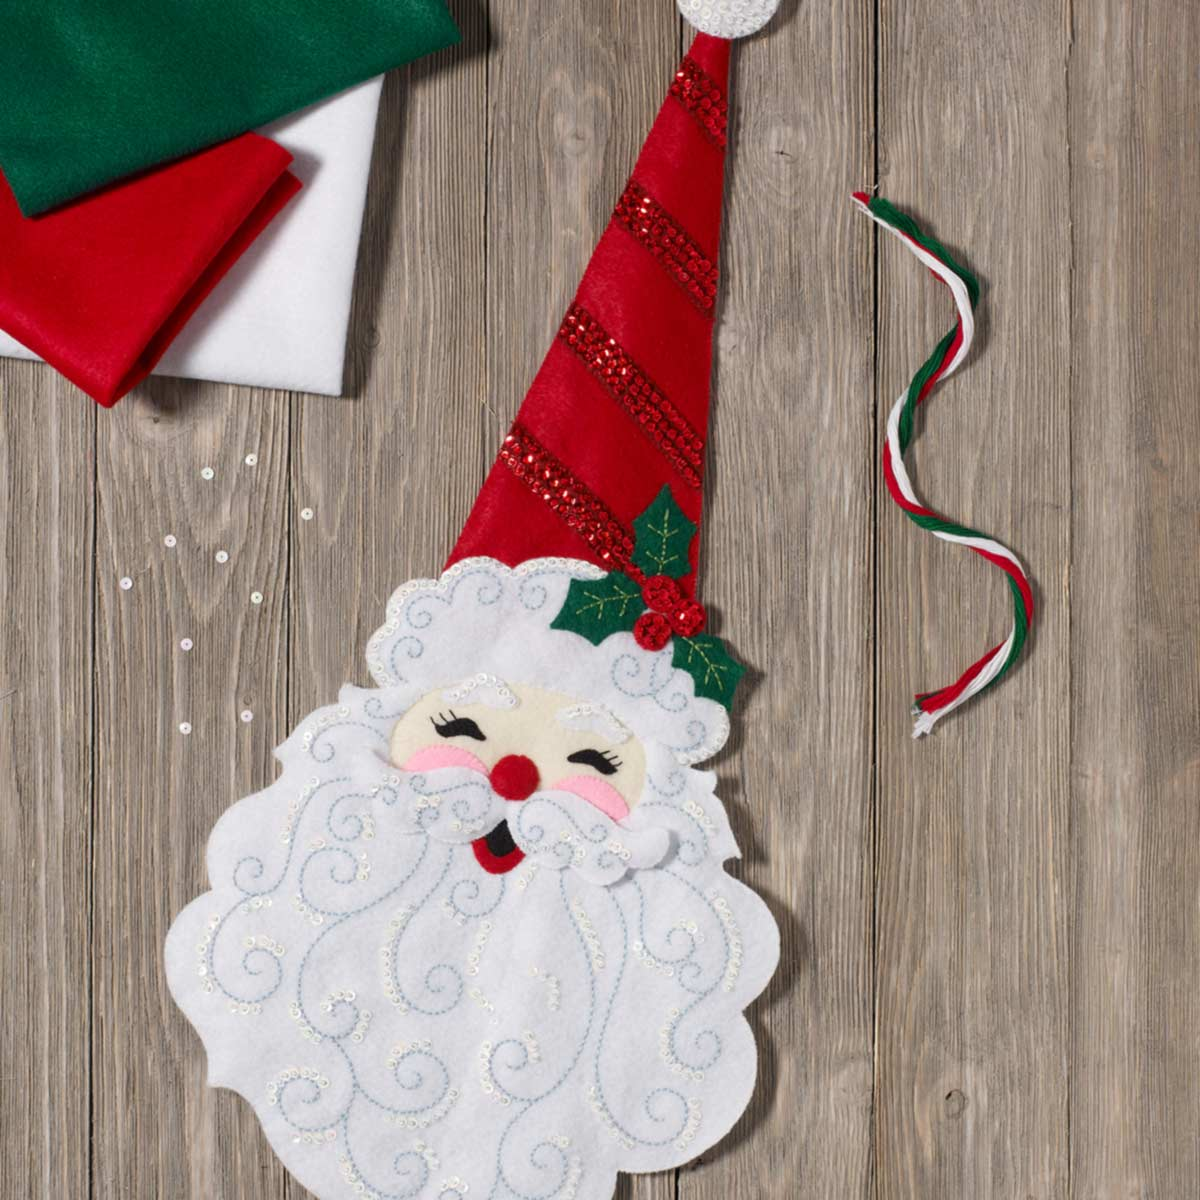 Bucilla ® Seasonal - Felt - Home Decor - Door/Wall Hanging Kits - Holly Jolly Santa